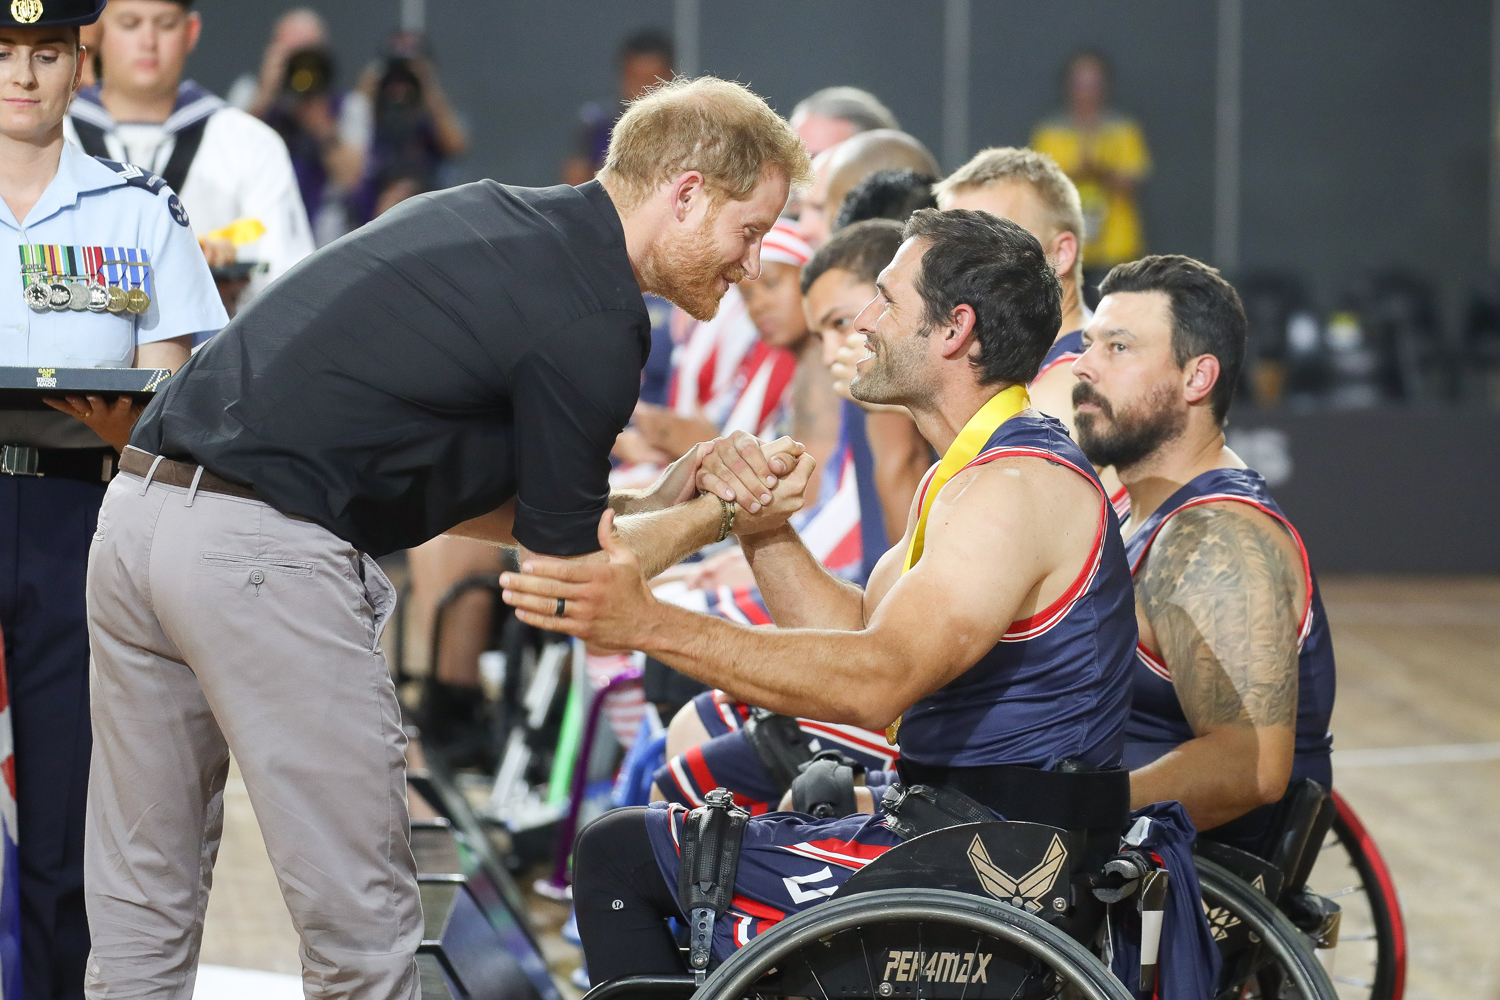 Prince Harry meeting with Invictus Games athletes